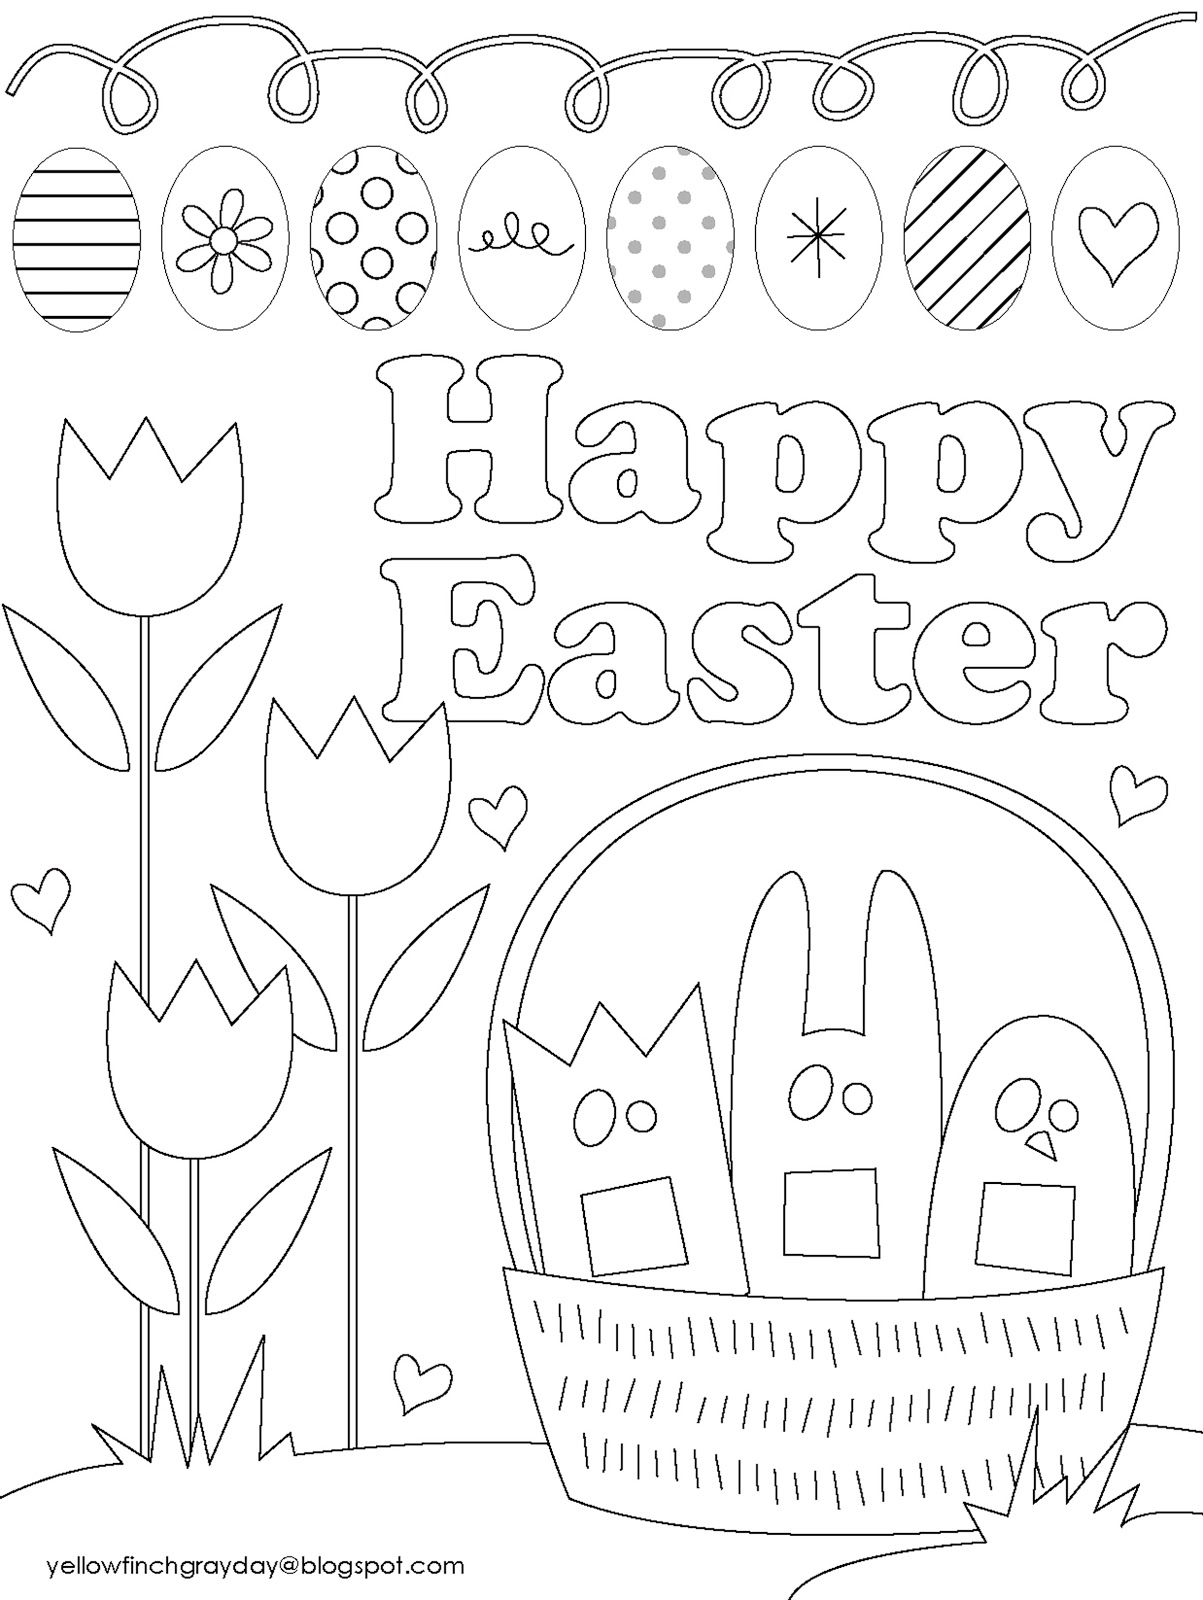 Right Click On Coloring Sheet Image To Save As